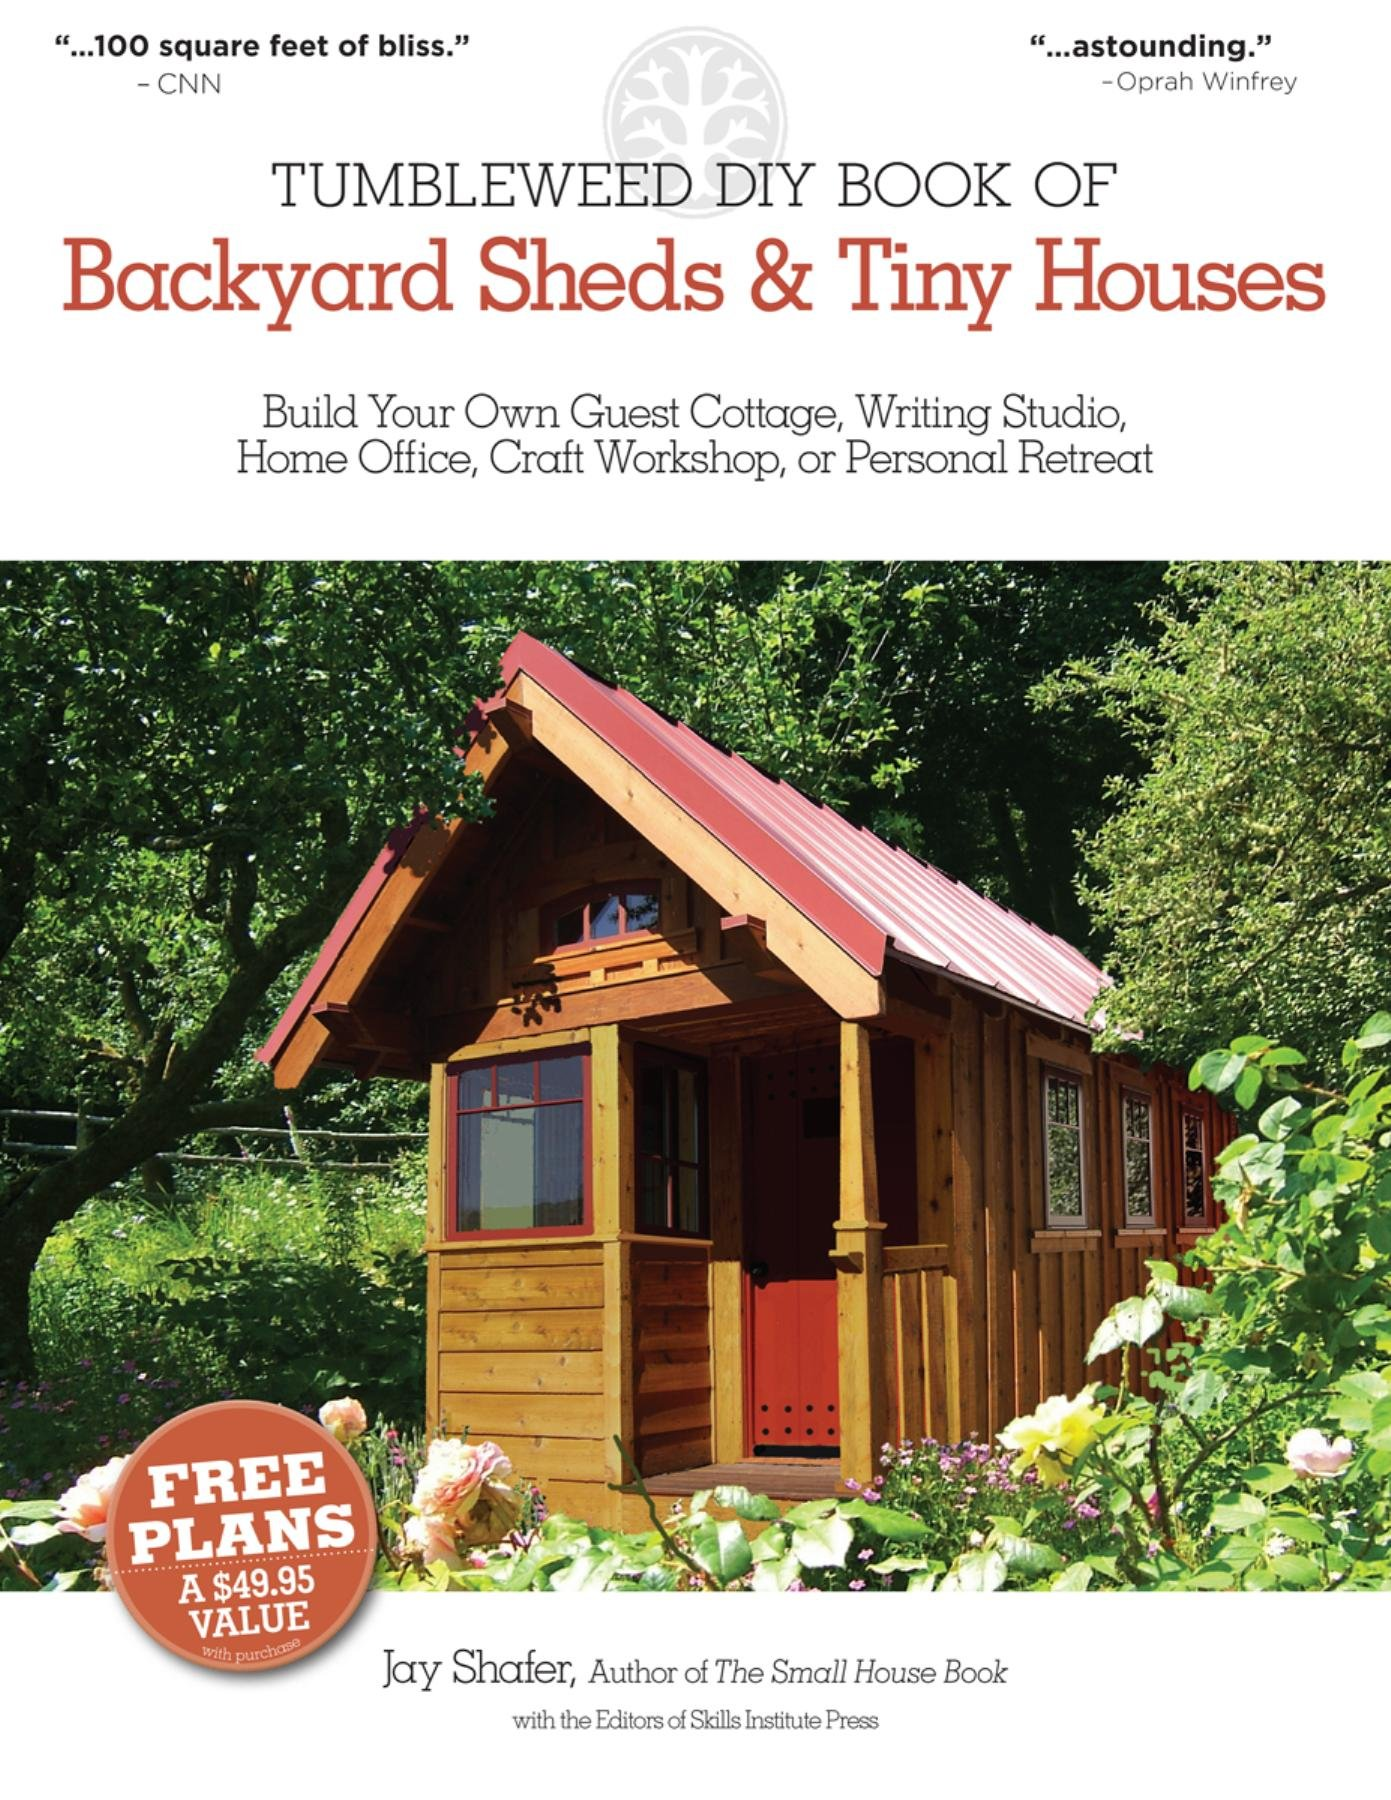 The tumbleweed diy book of backyard sheds and tiny houses build the tumbleweed diy book of backyard sheds and tiny houses build your own guest cottage writing studio home office craft workshop or personal retreat solutioingenieria Choice Image